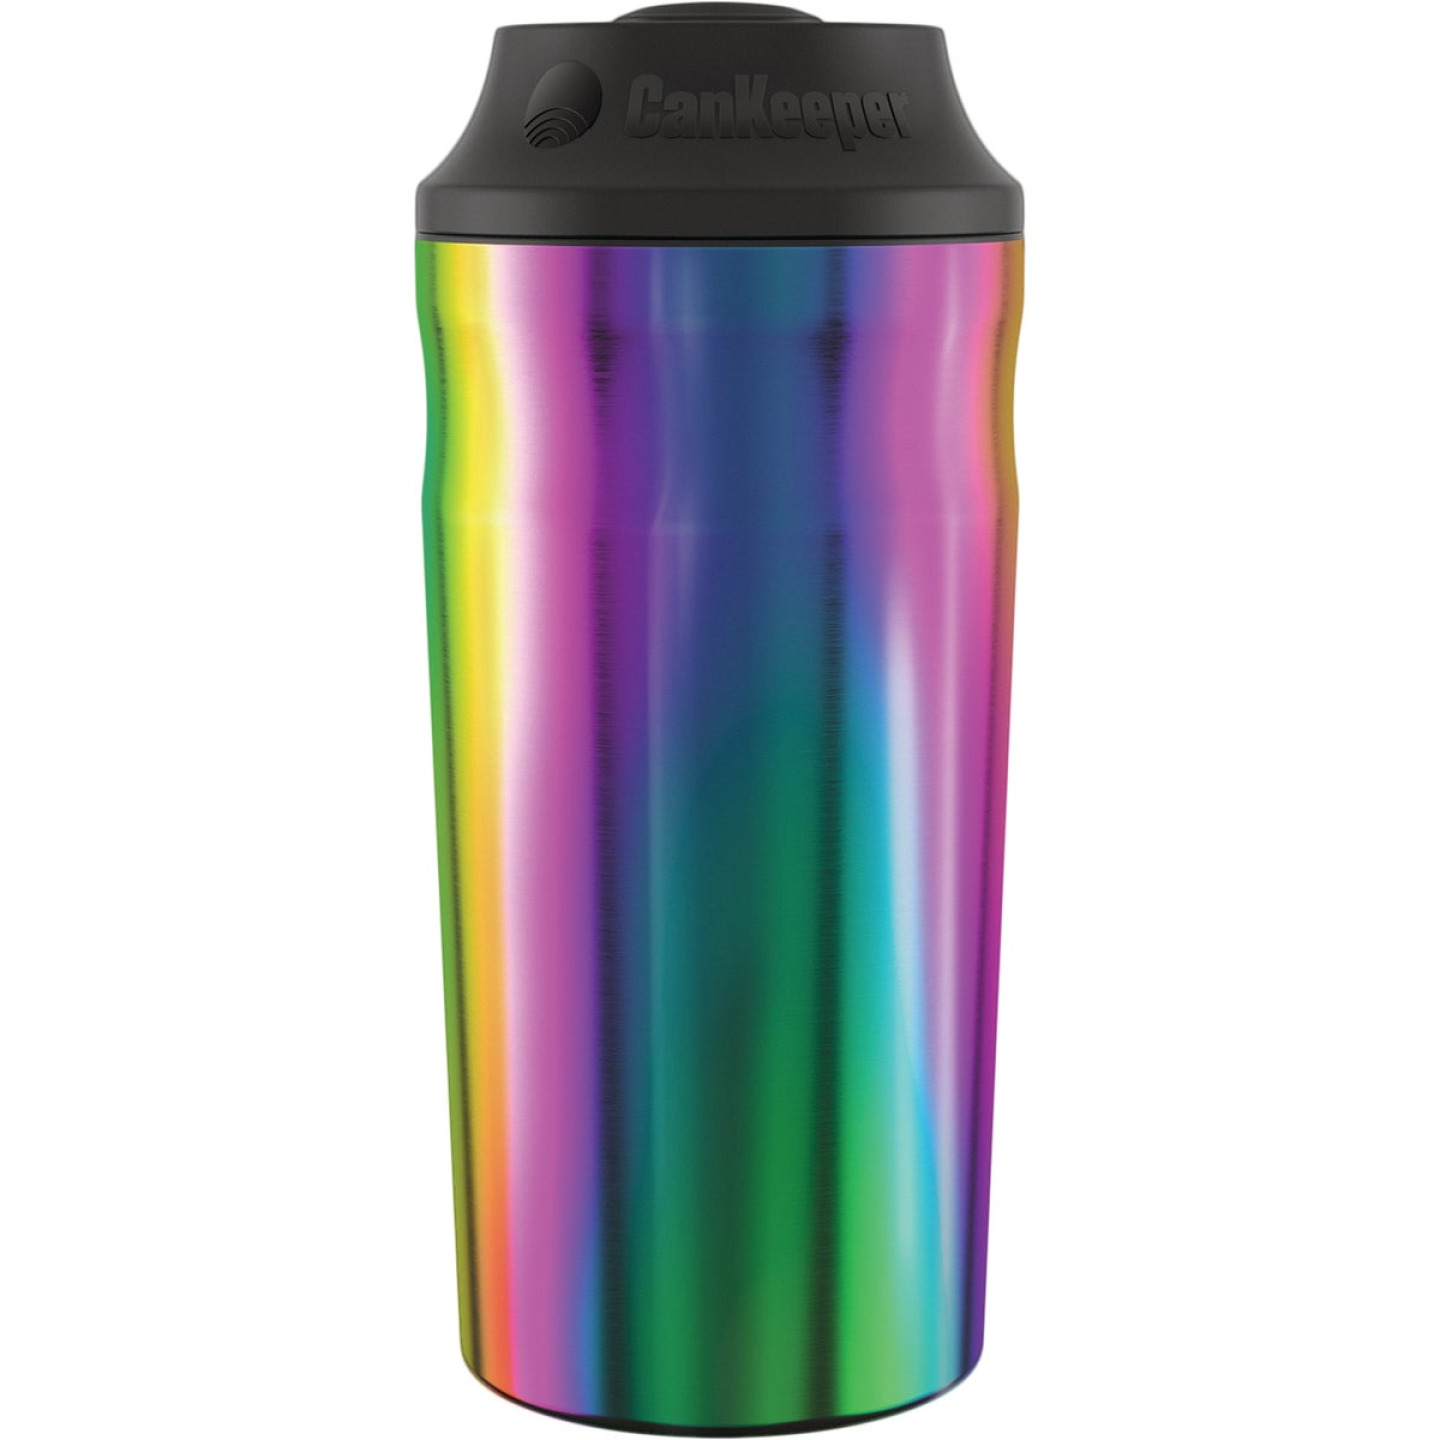 CanKeeper Neo Chrome Can Holder Image 1